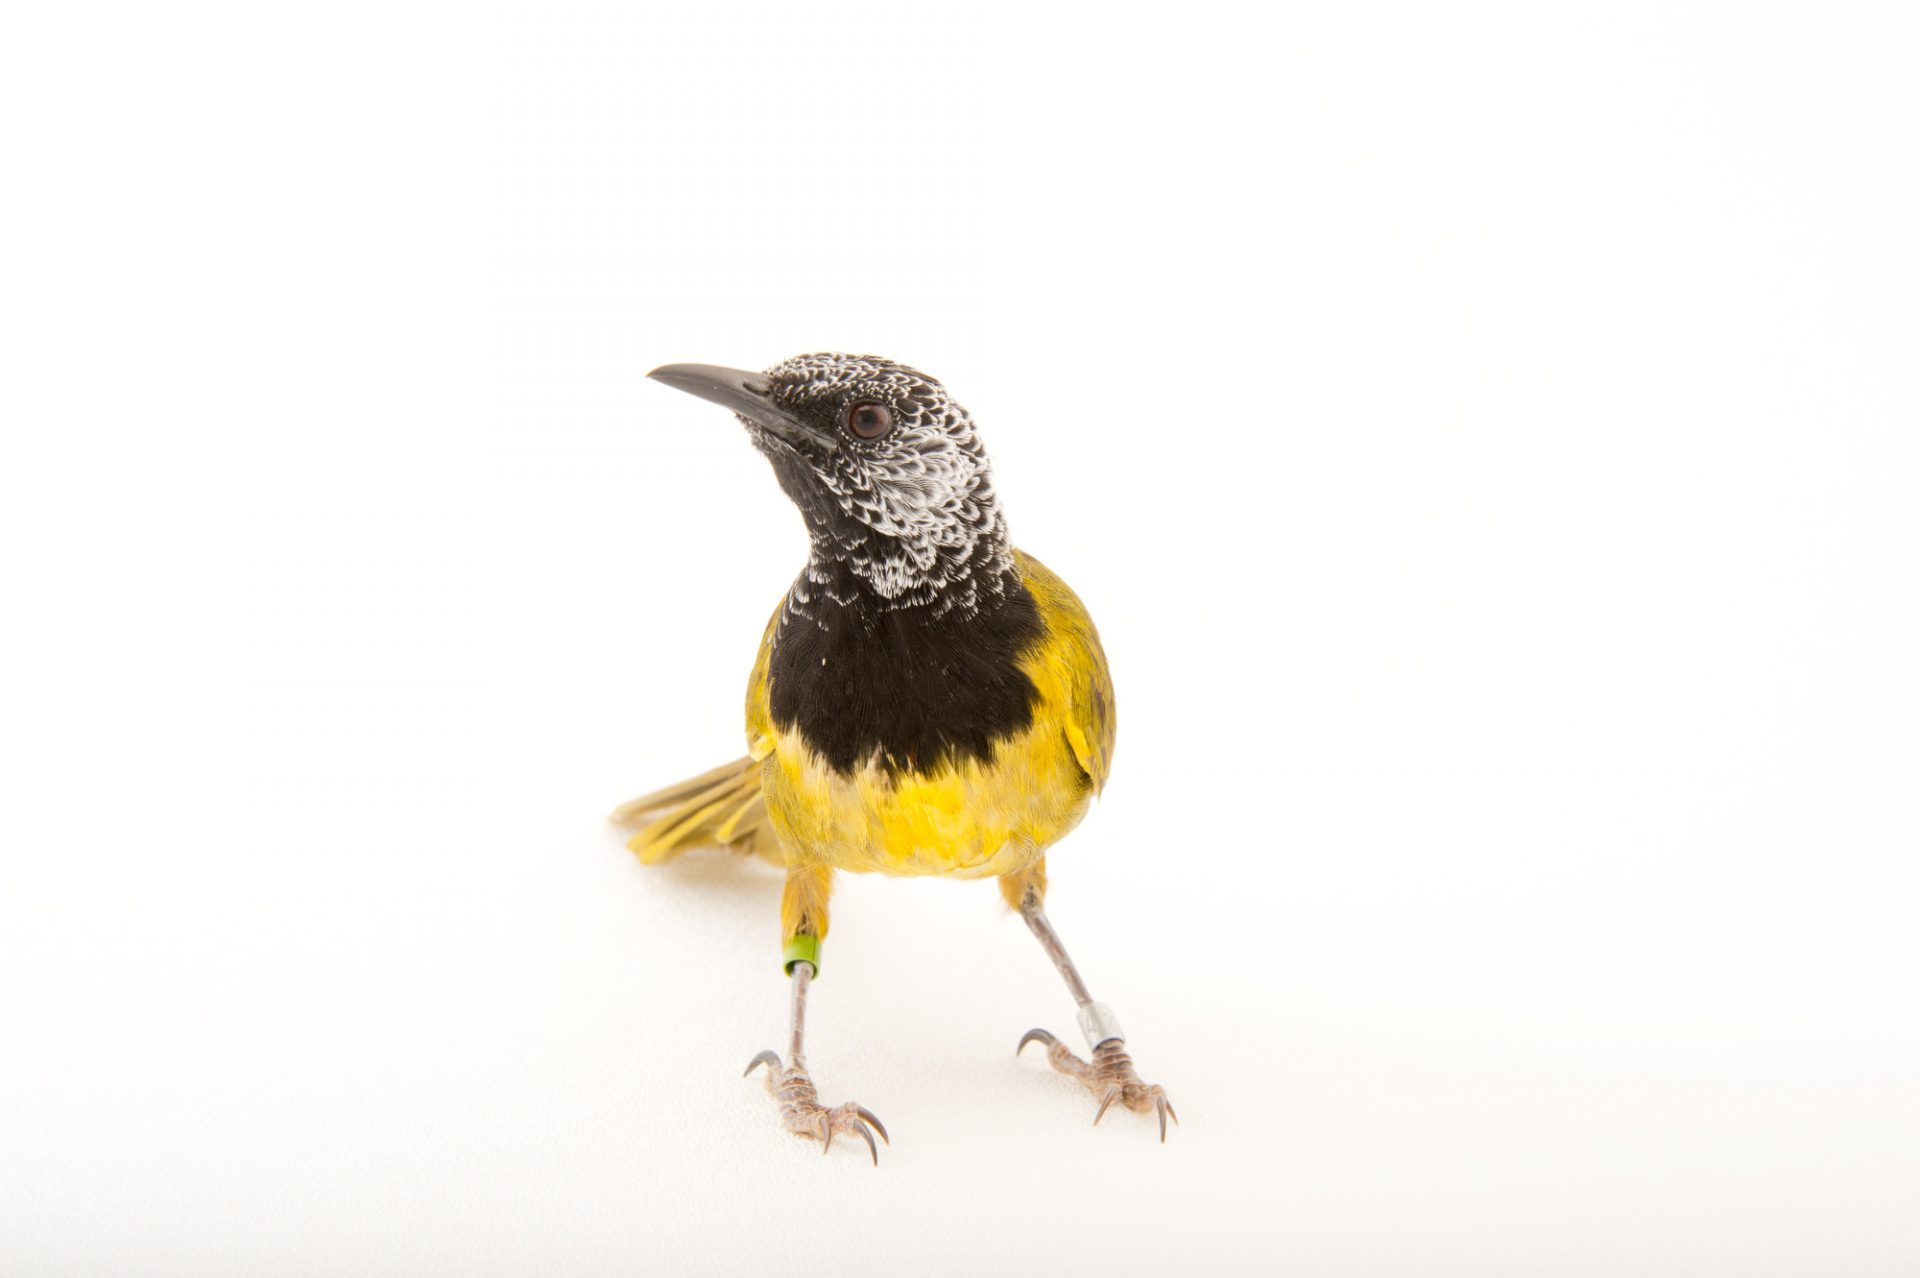 Photo: Oriole warbler (Hypergerus atriceps) at the Oklahoma City Zoo.